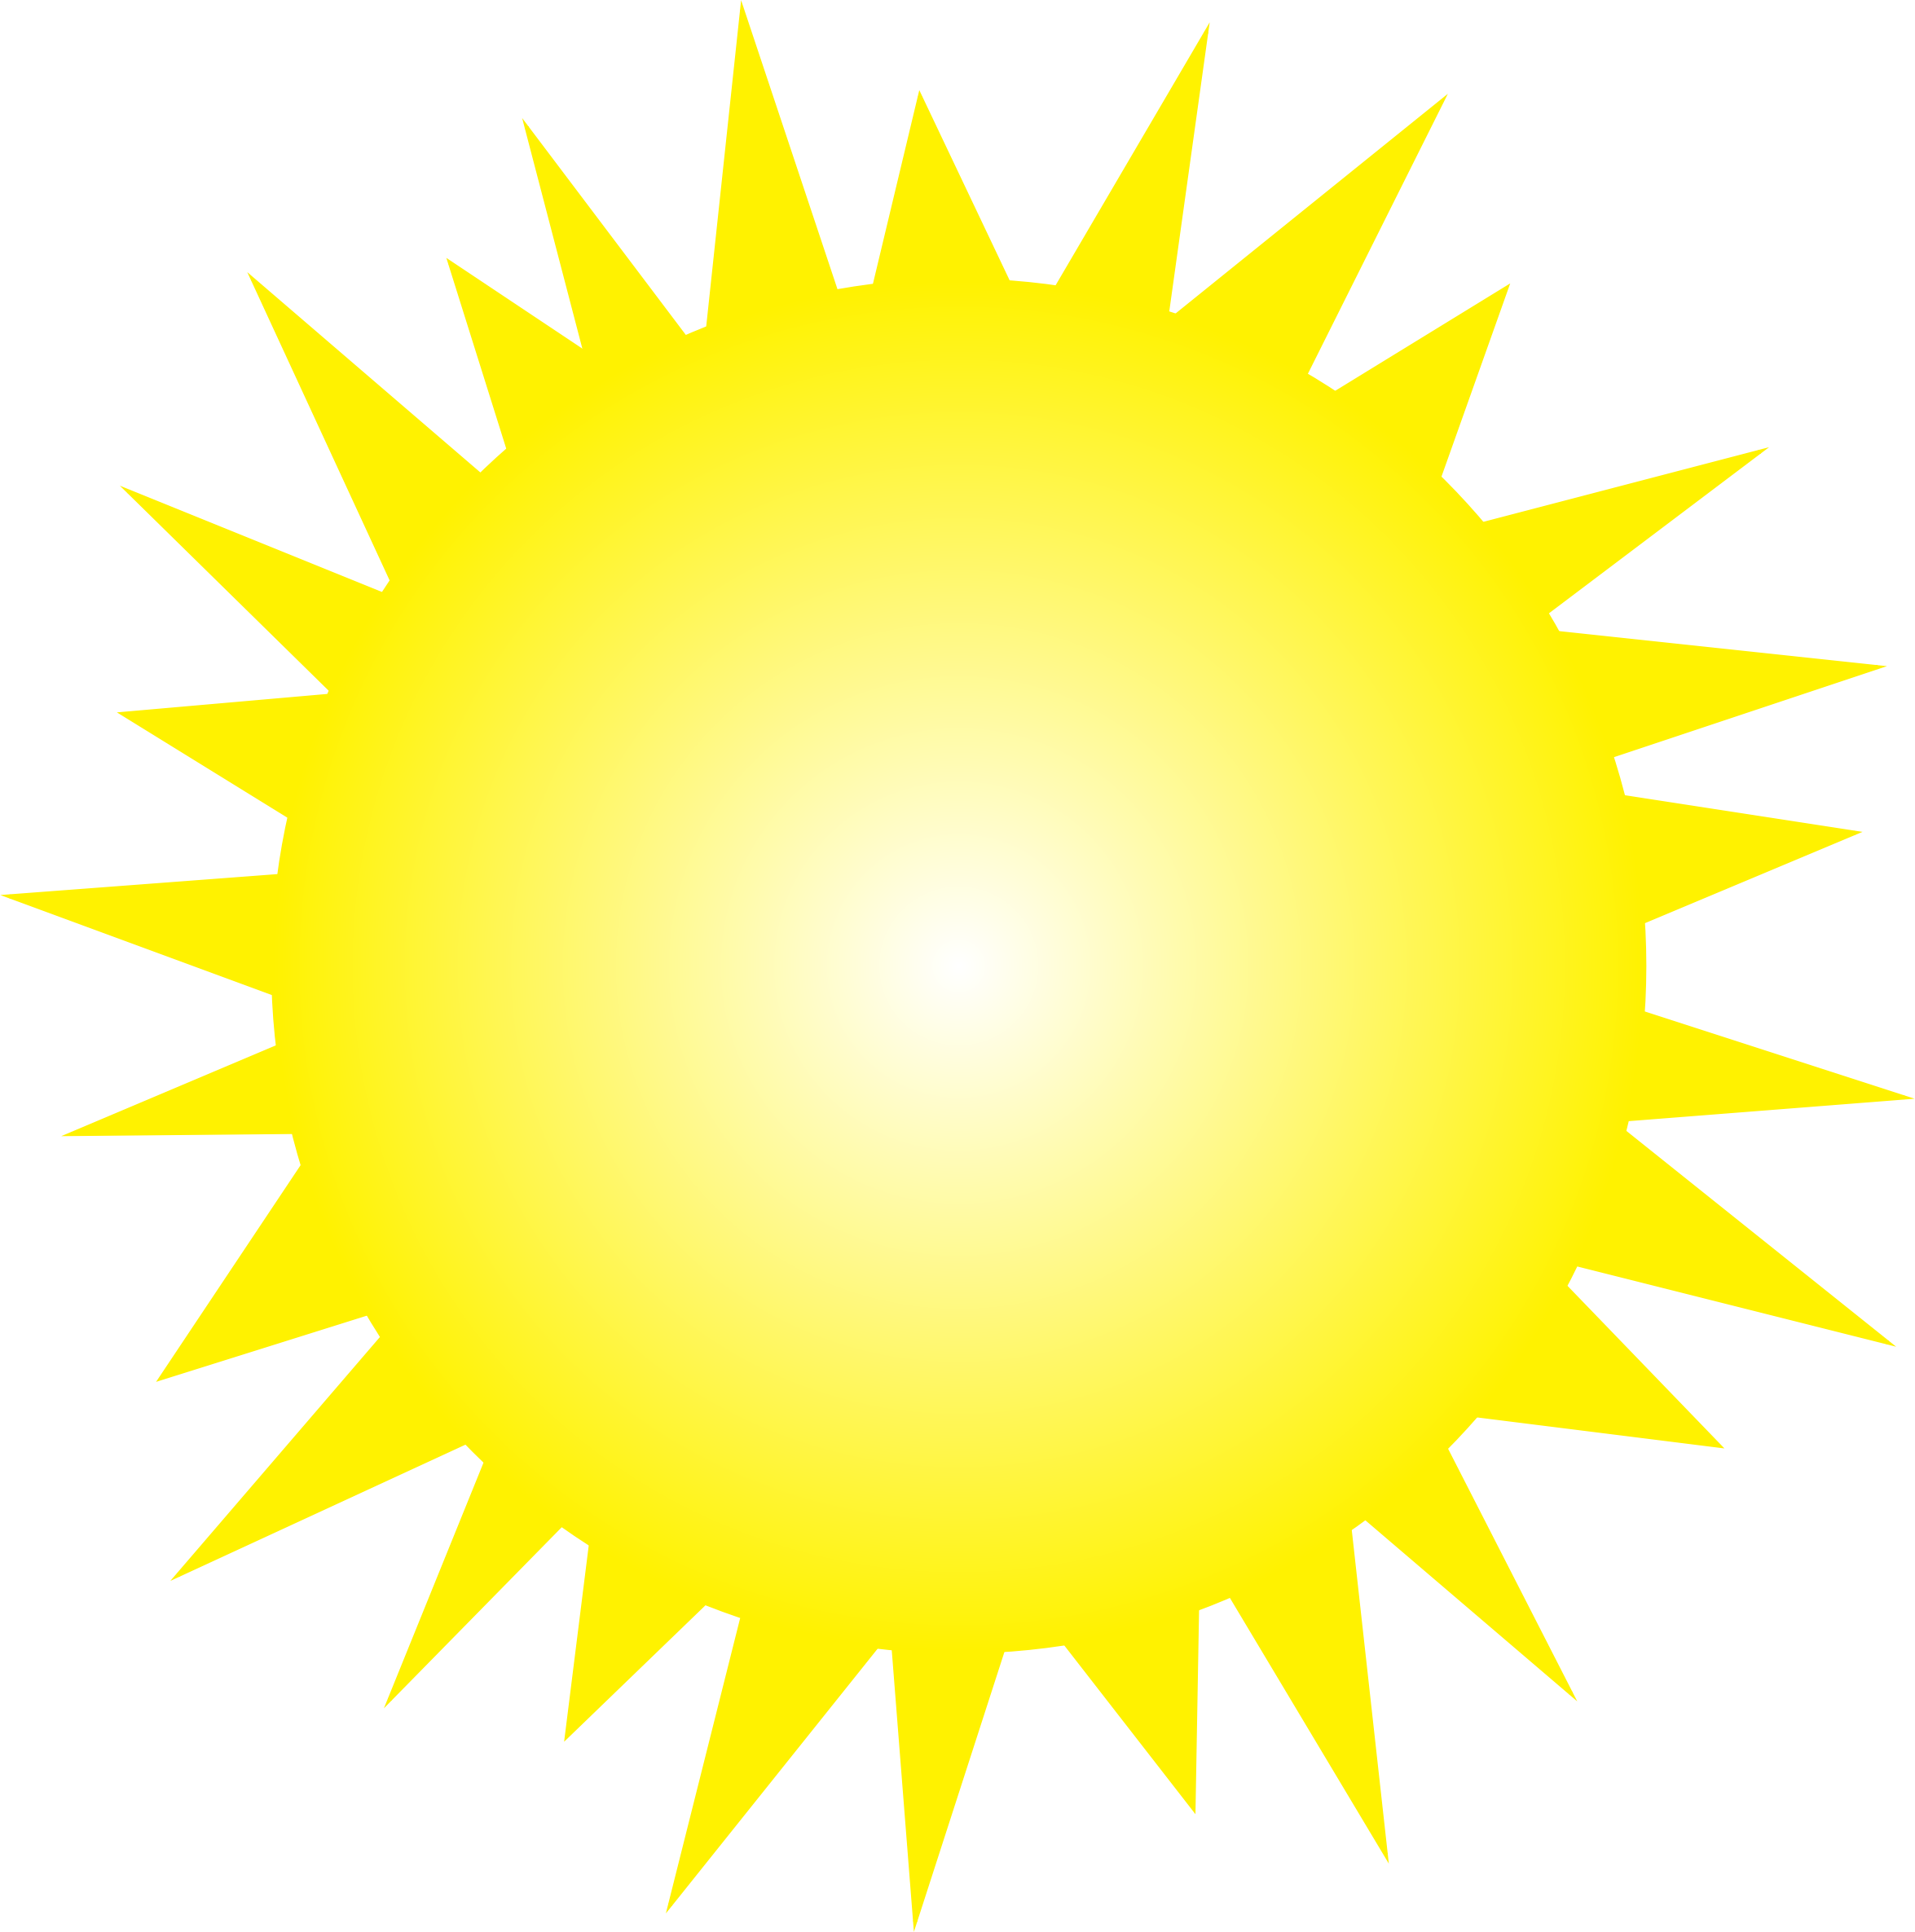 Sun png images real. Sunny clipart neon